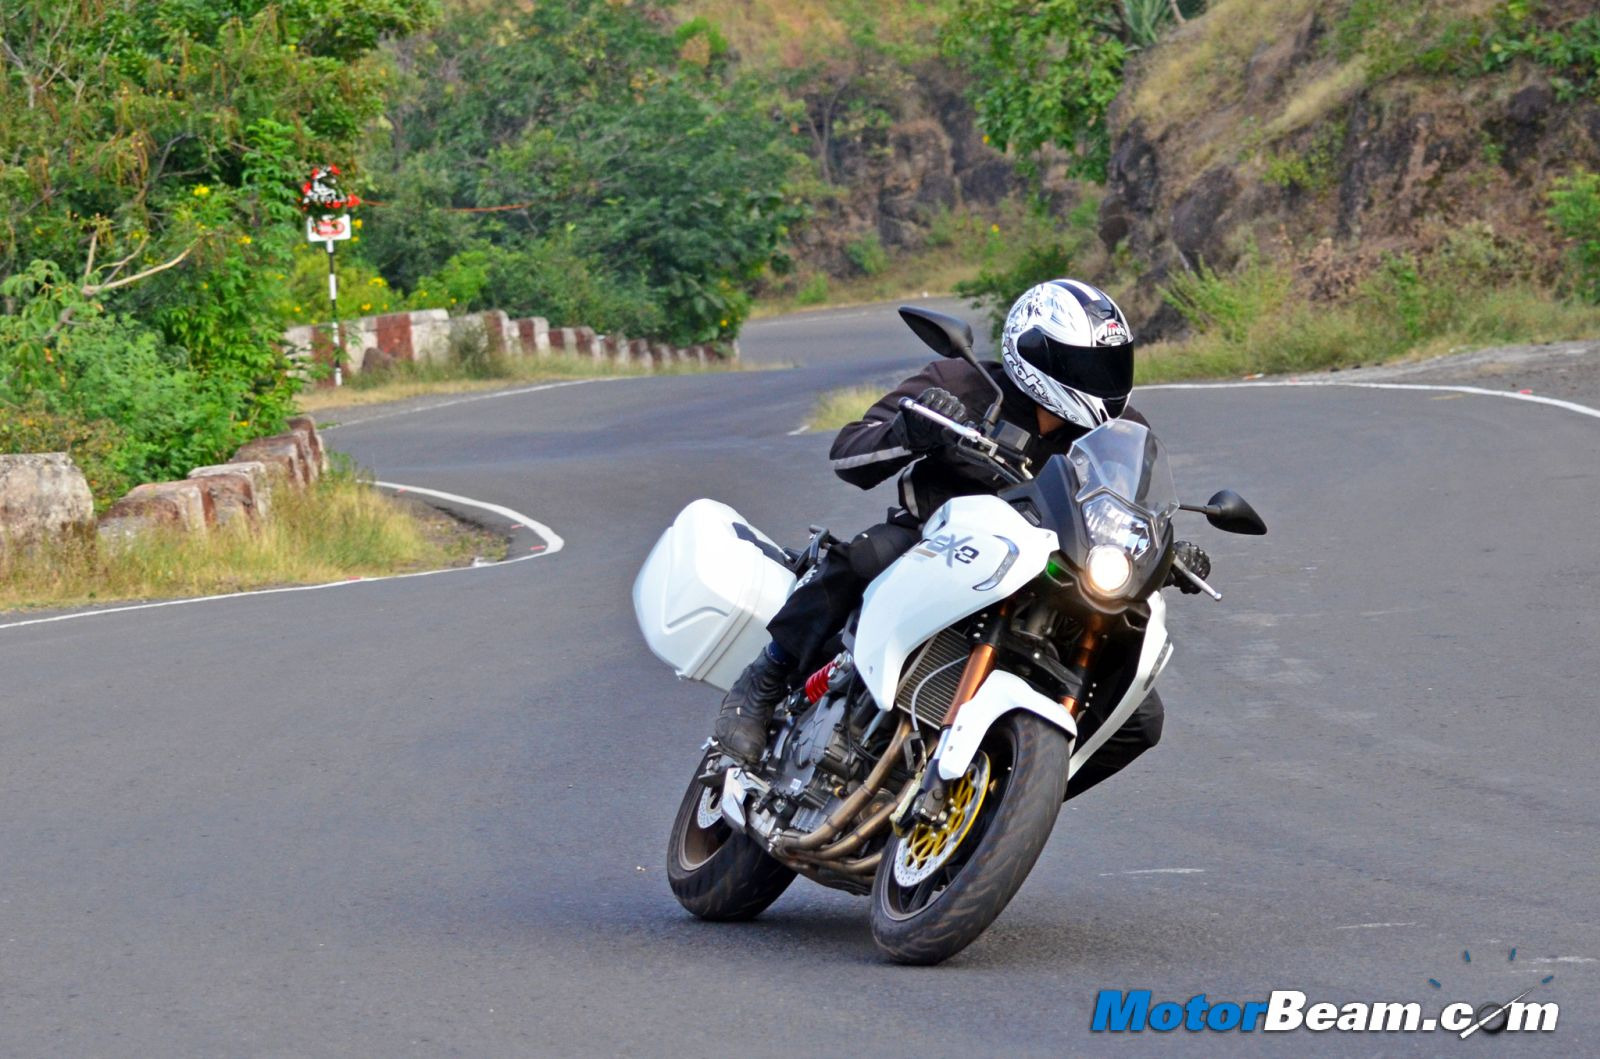 Benelli BN 600 GT Test Ride Review